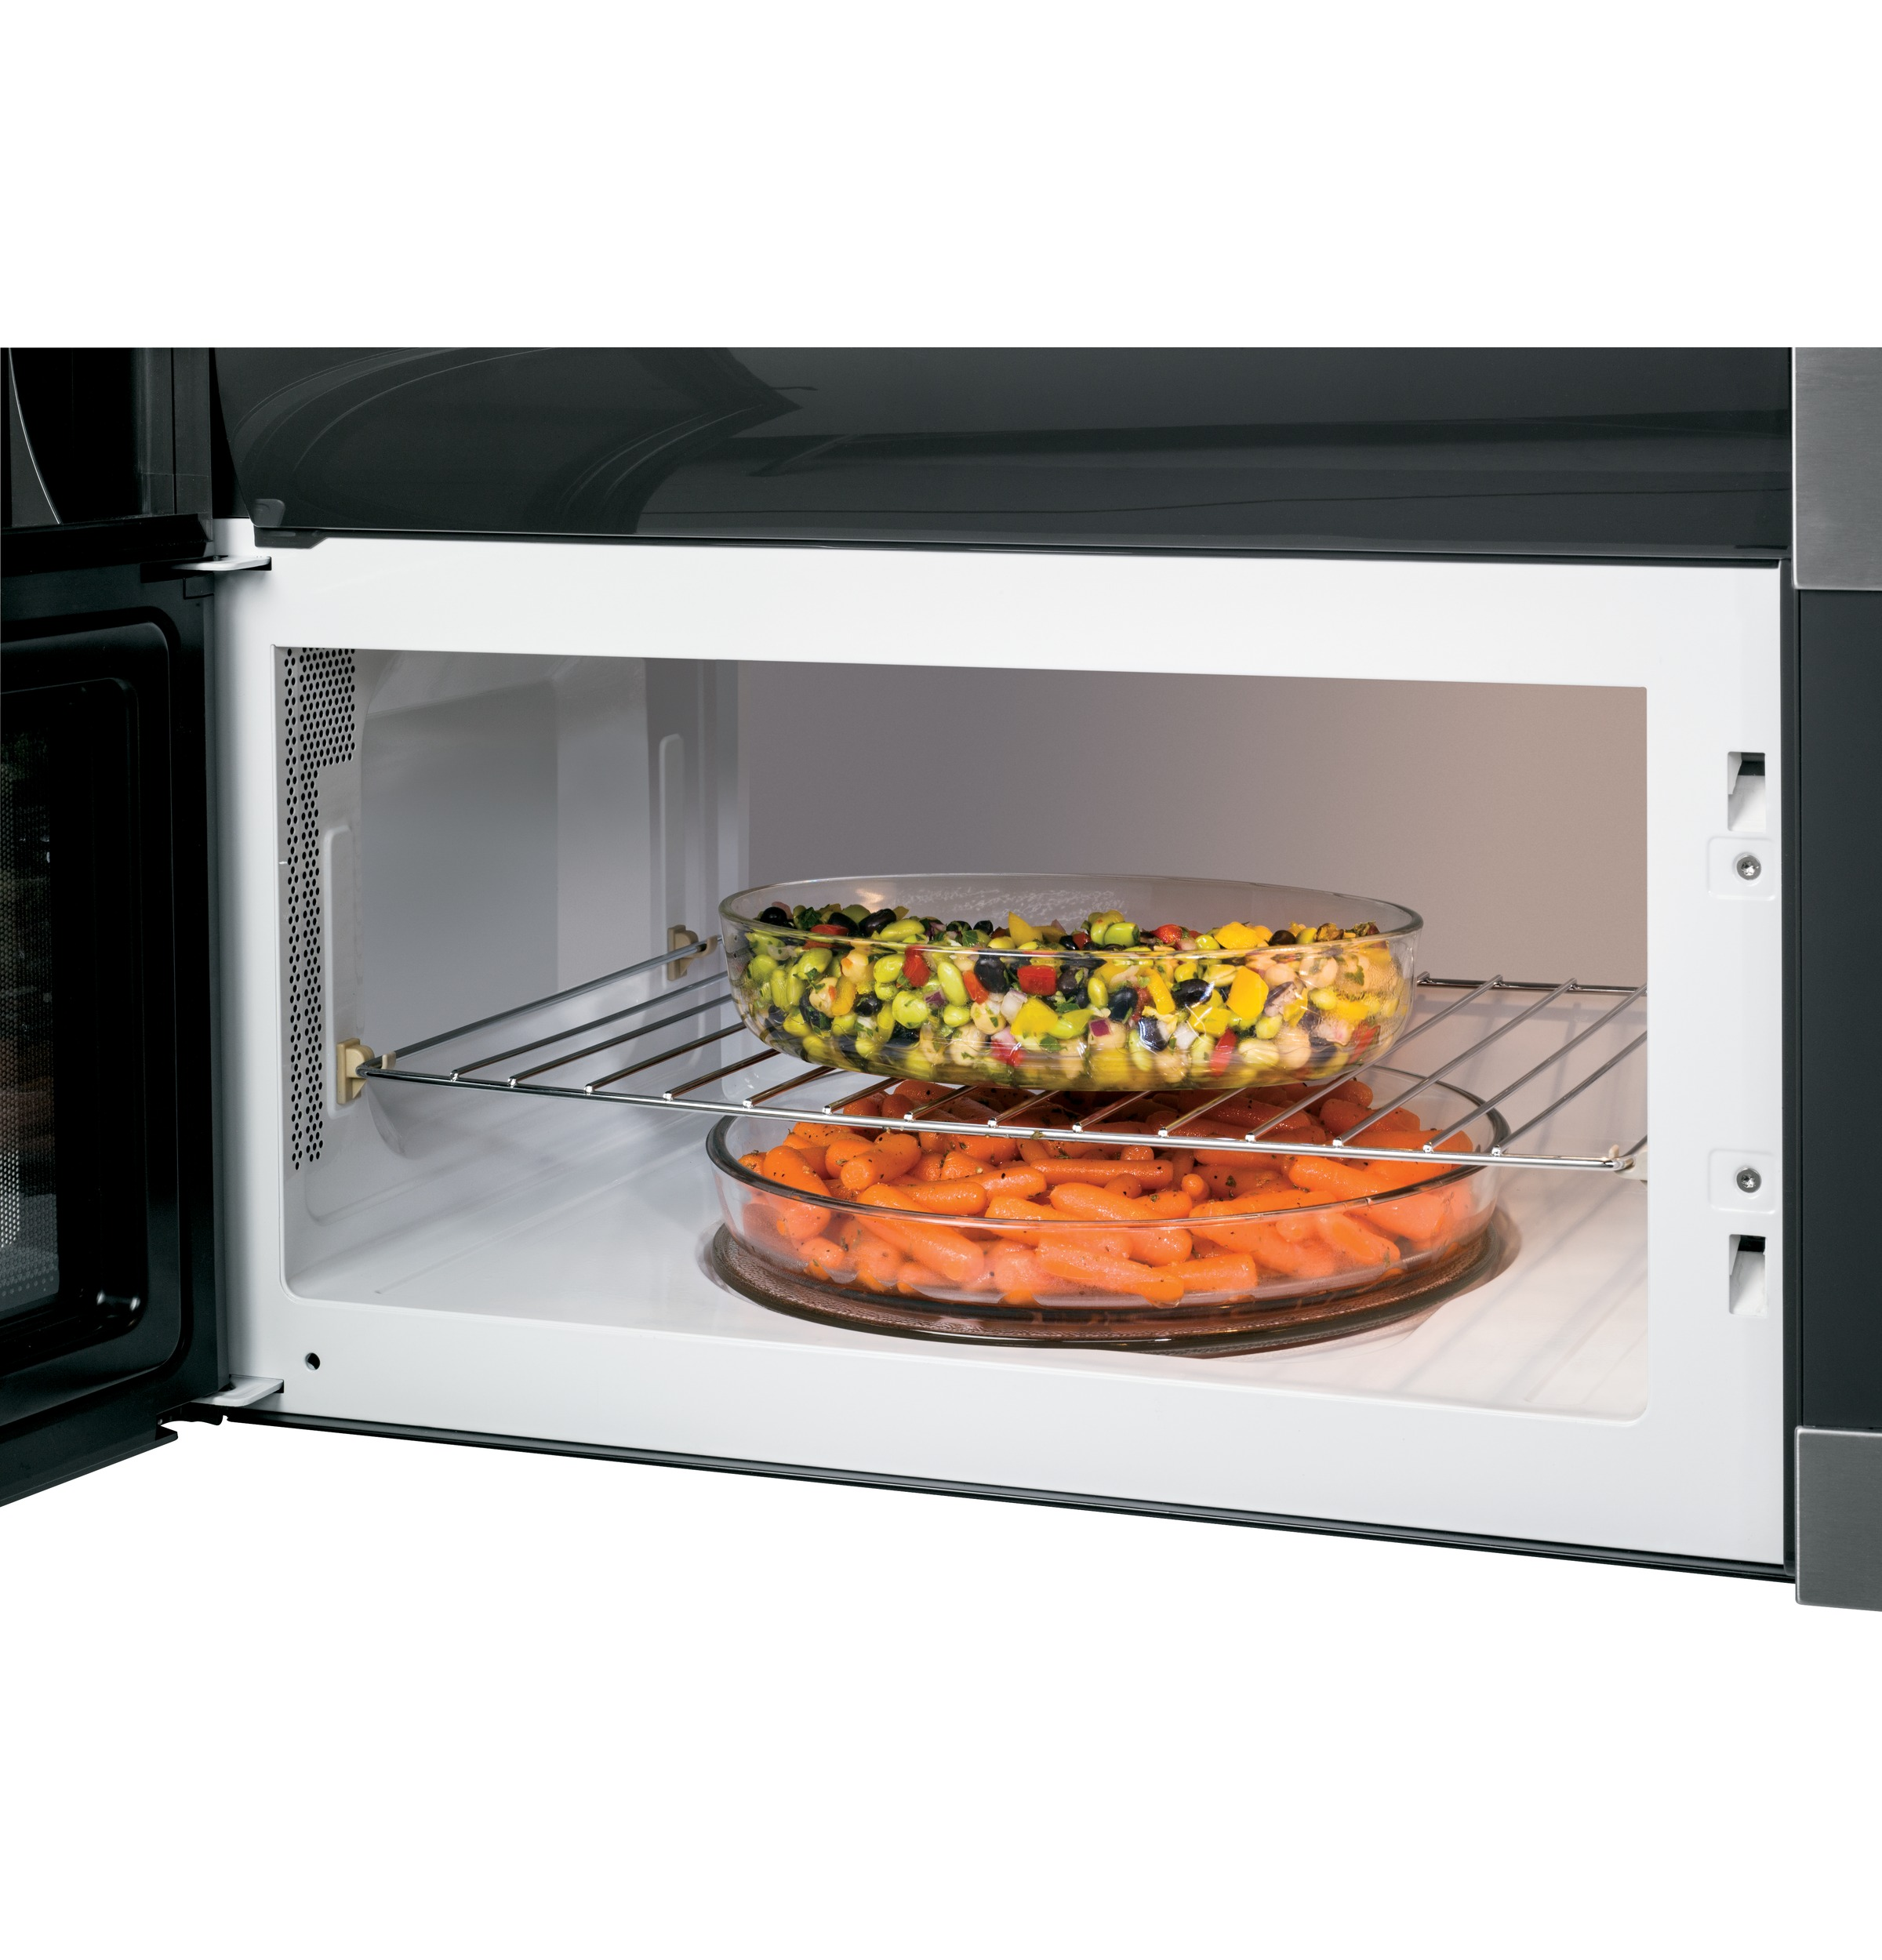 GE Appliances JVM7195SFSS 1.9 cu. ft. Over-the-Range Sensor Microwave Oven - Stainless